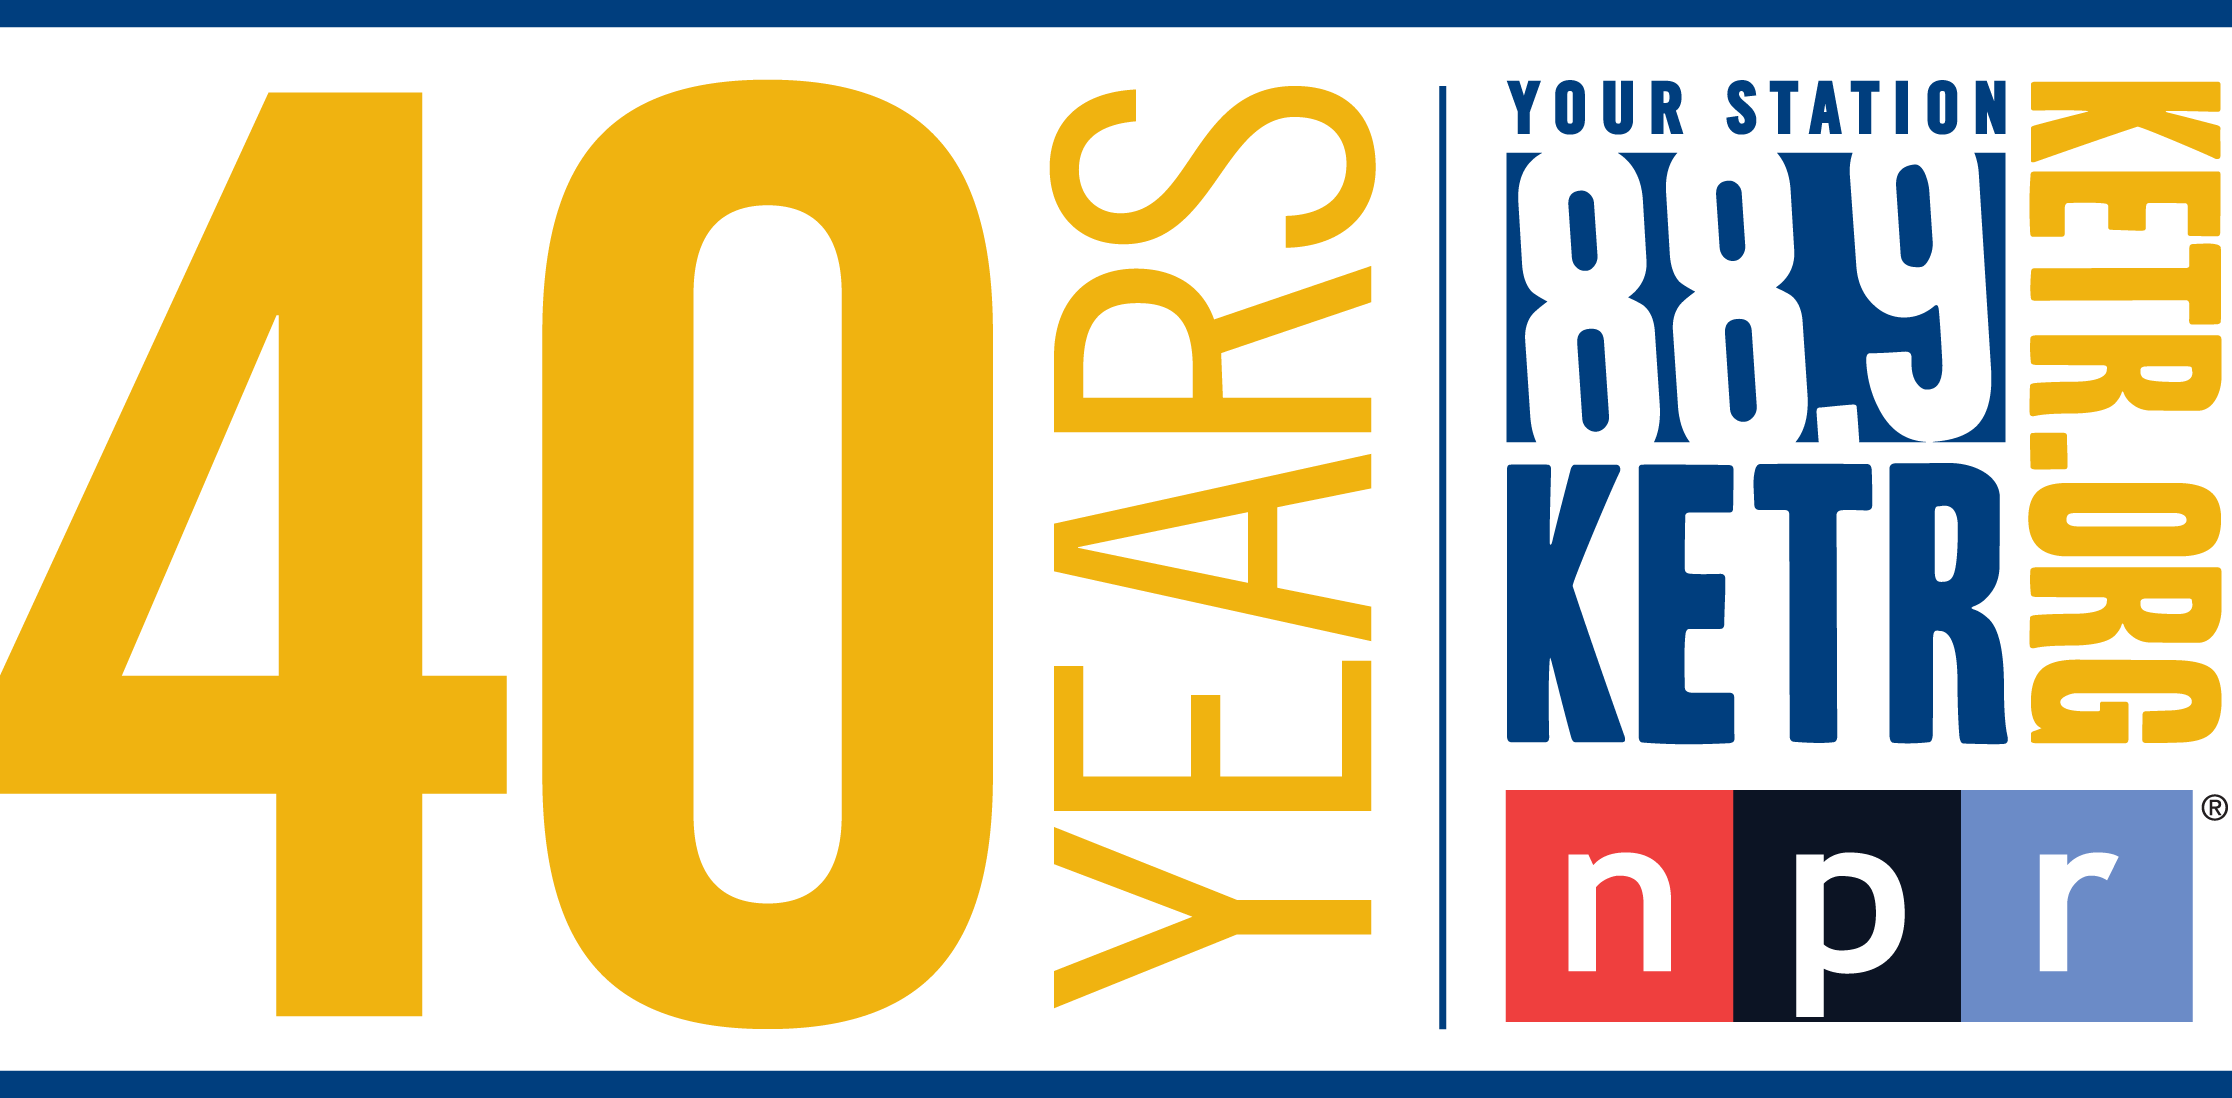 88.9 KETR logo